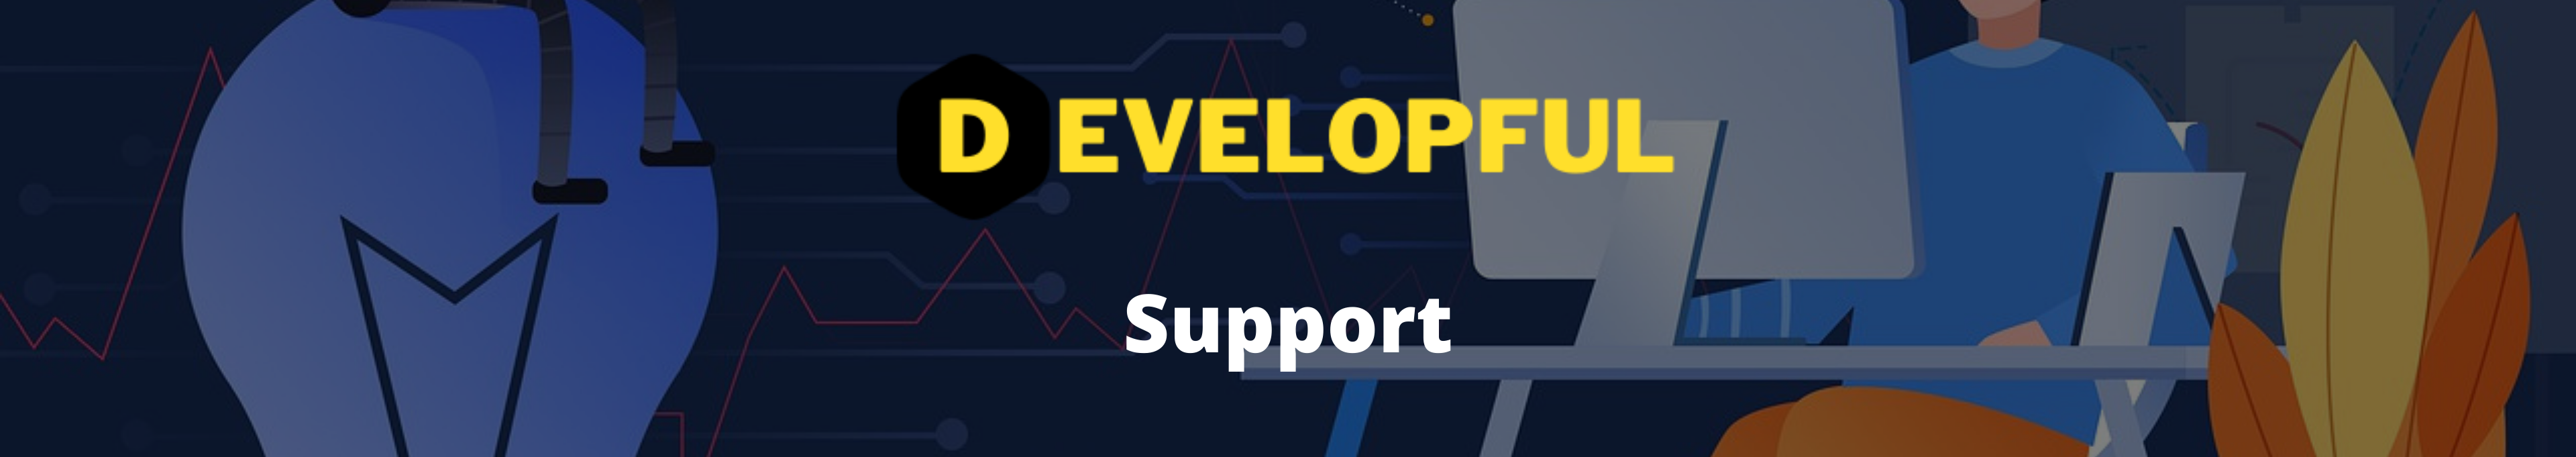 Developful Support